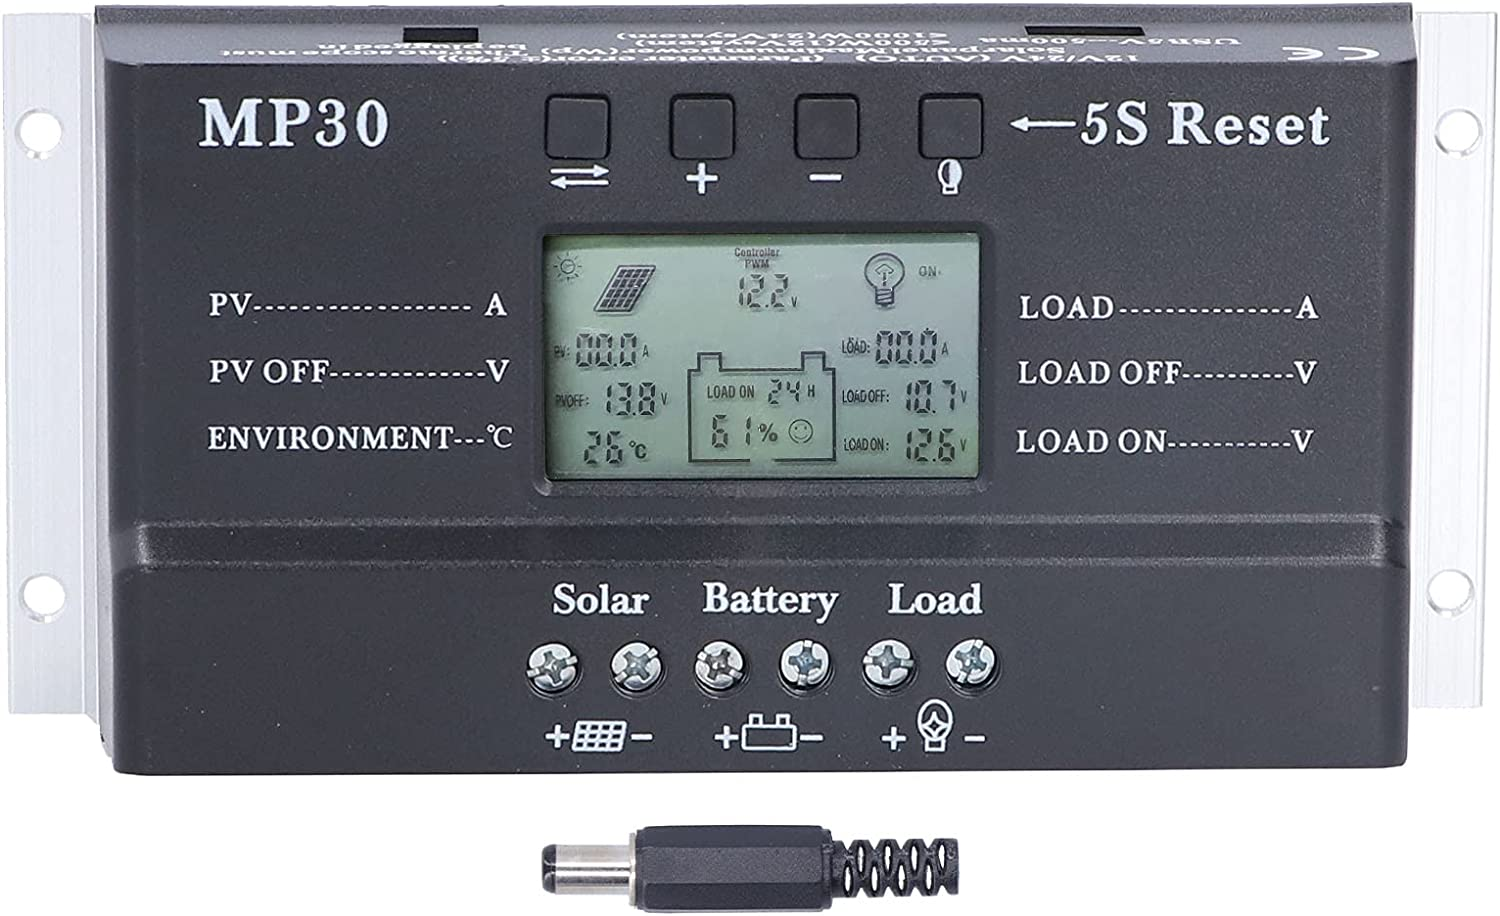 SALUTUY Solar Charge S Controller Ranking TOP18 Ranking TOP6 Panel